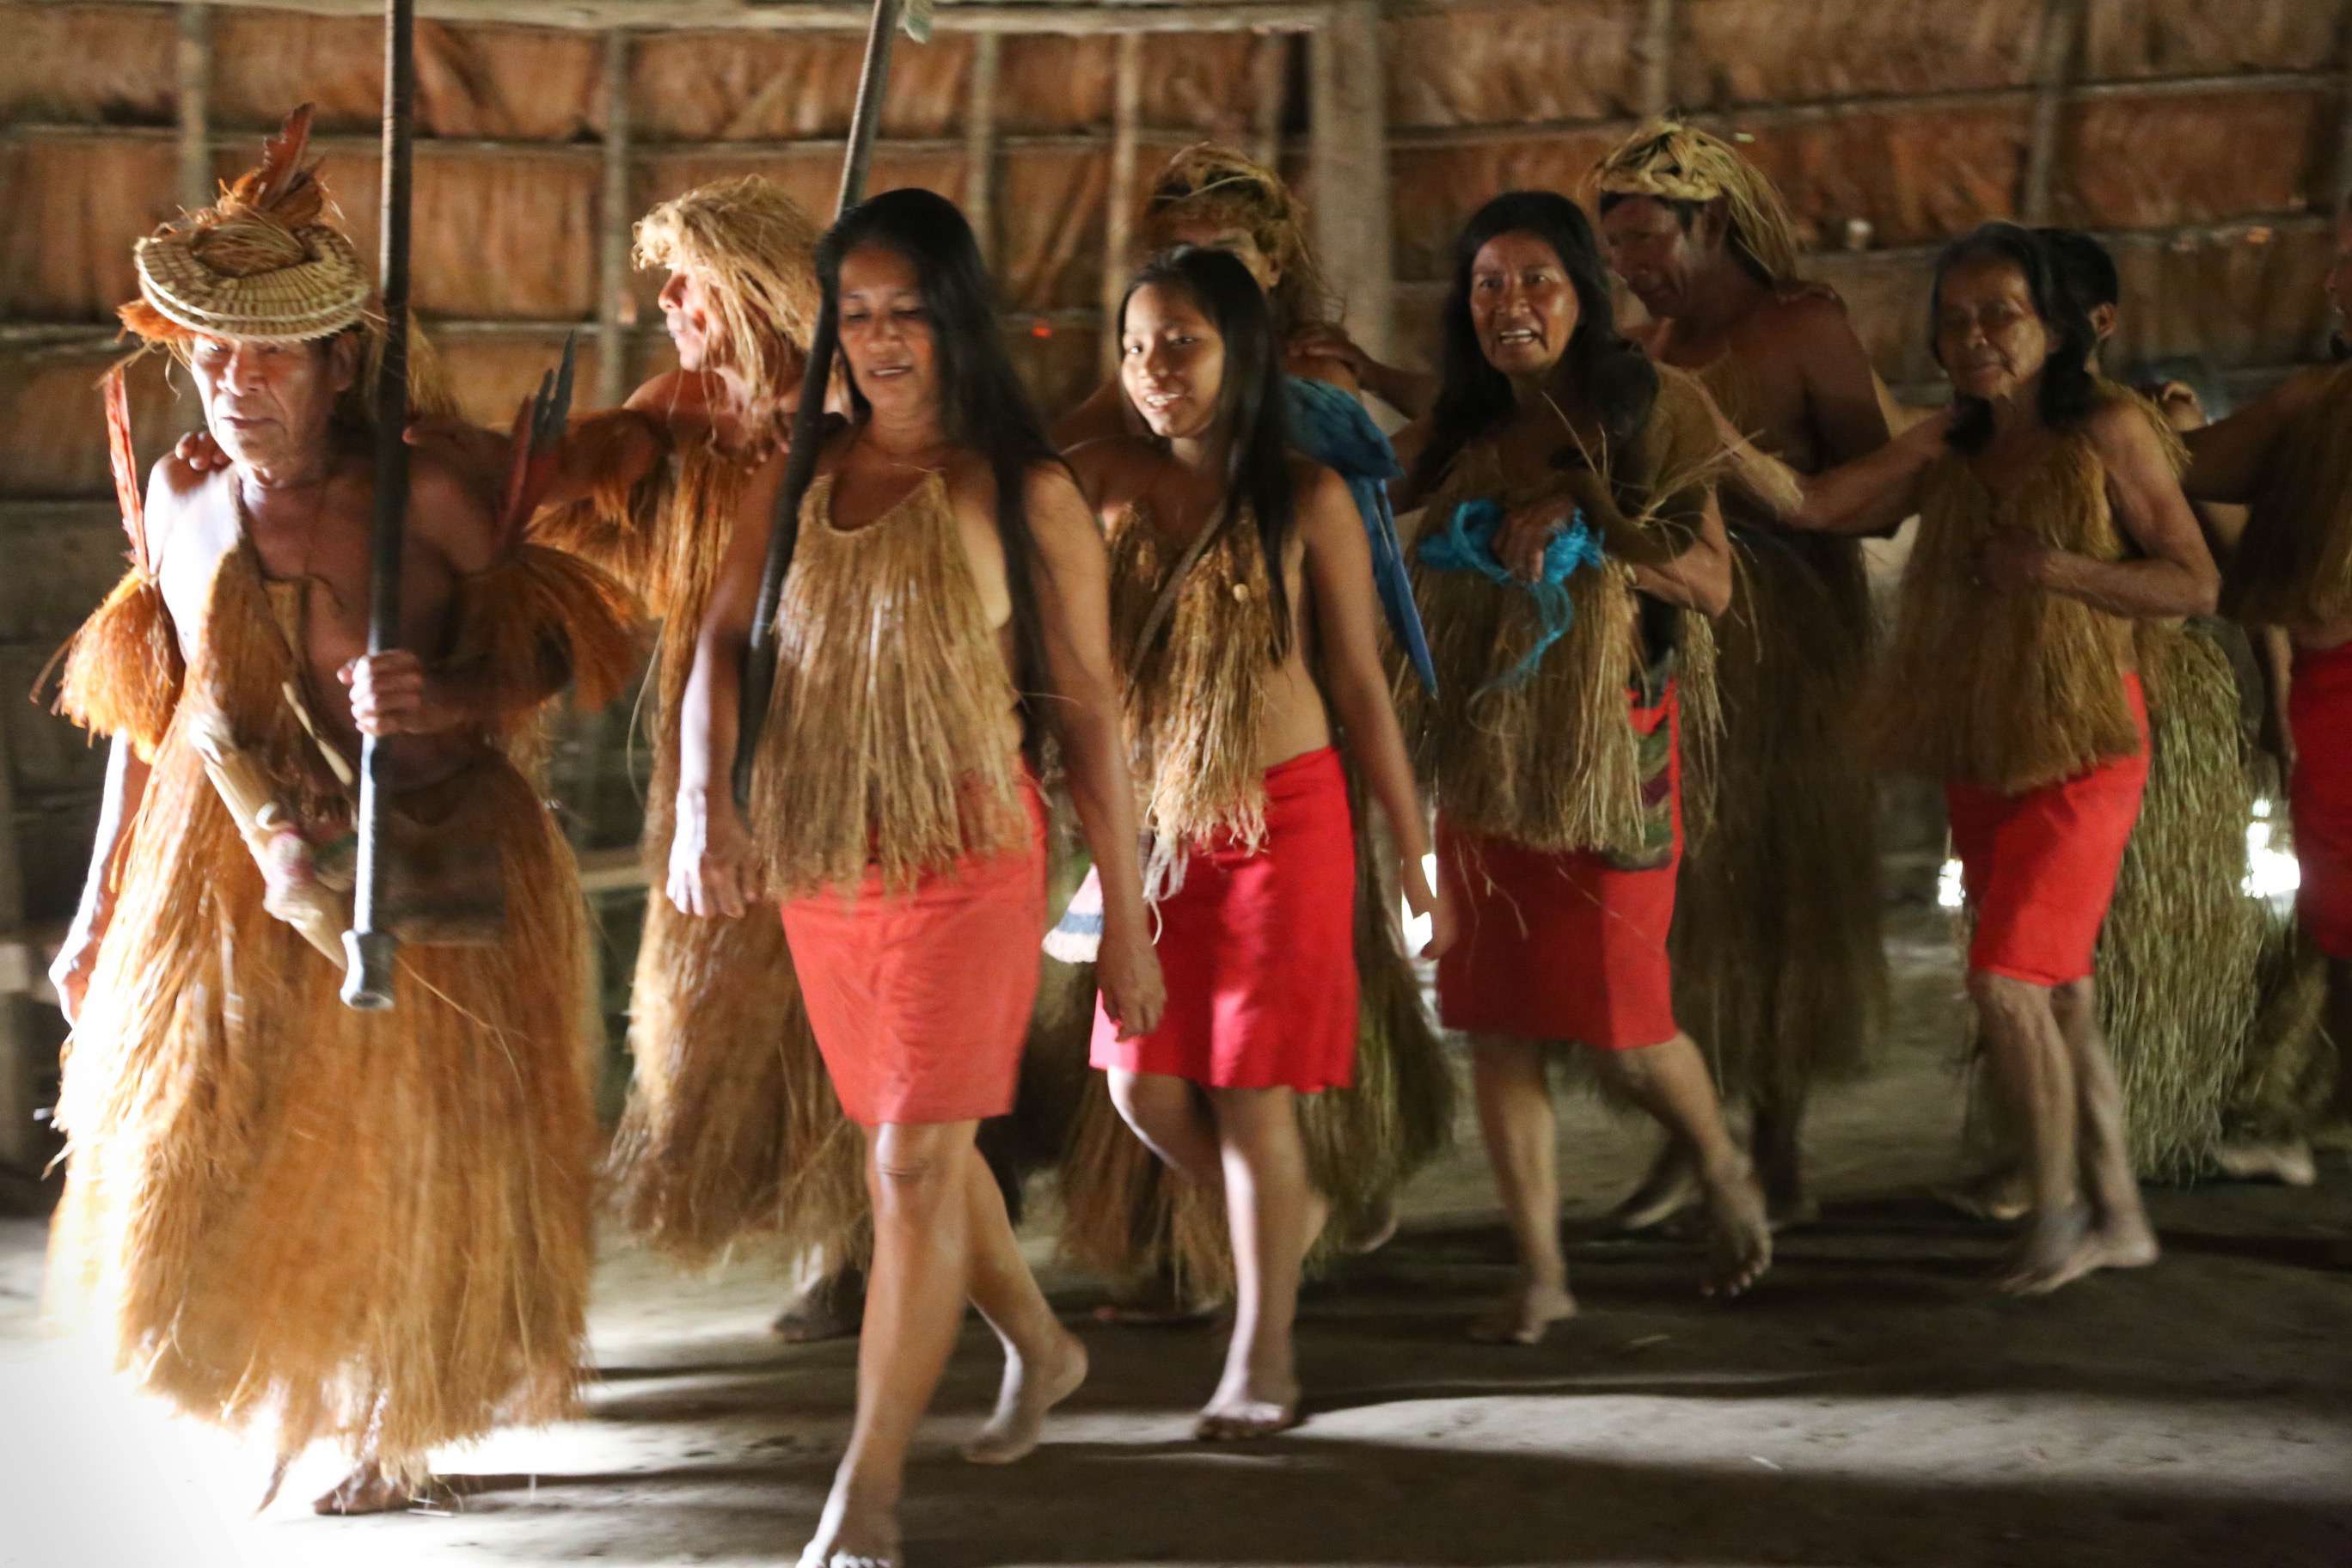 Men and women dance together. The men wear a grass skirt and the women usually wear a red cloth skirt.